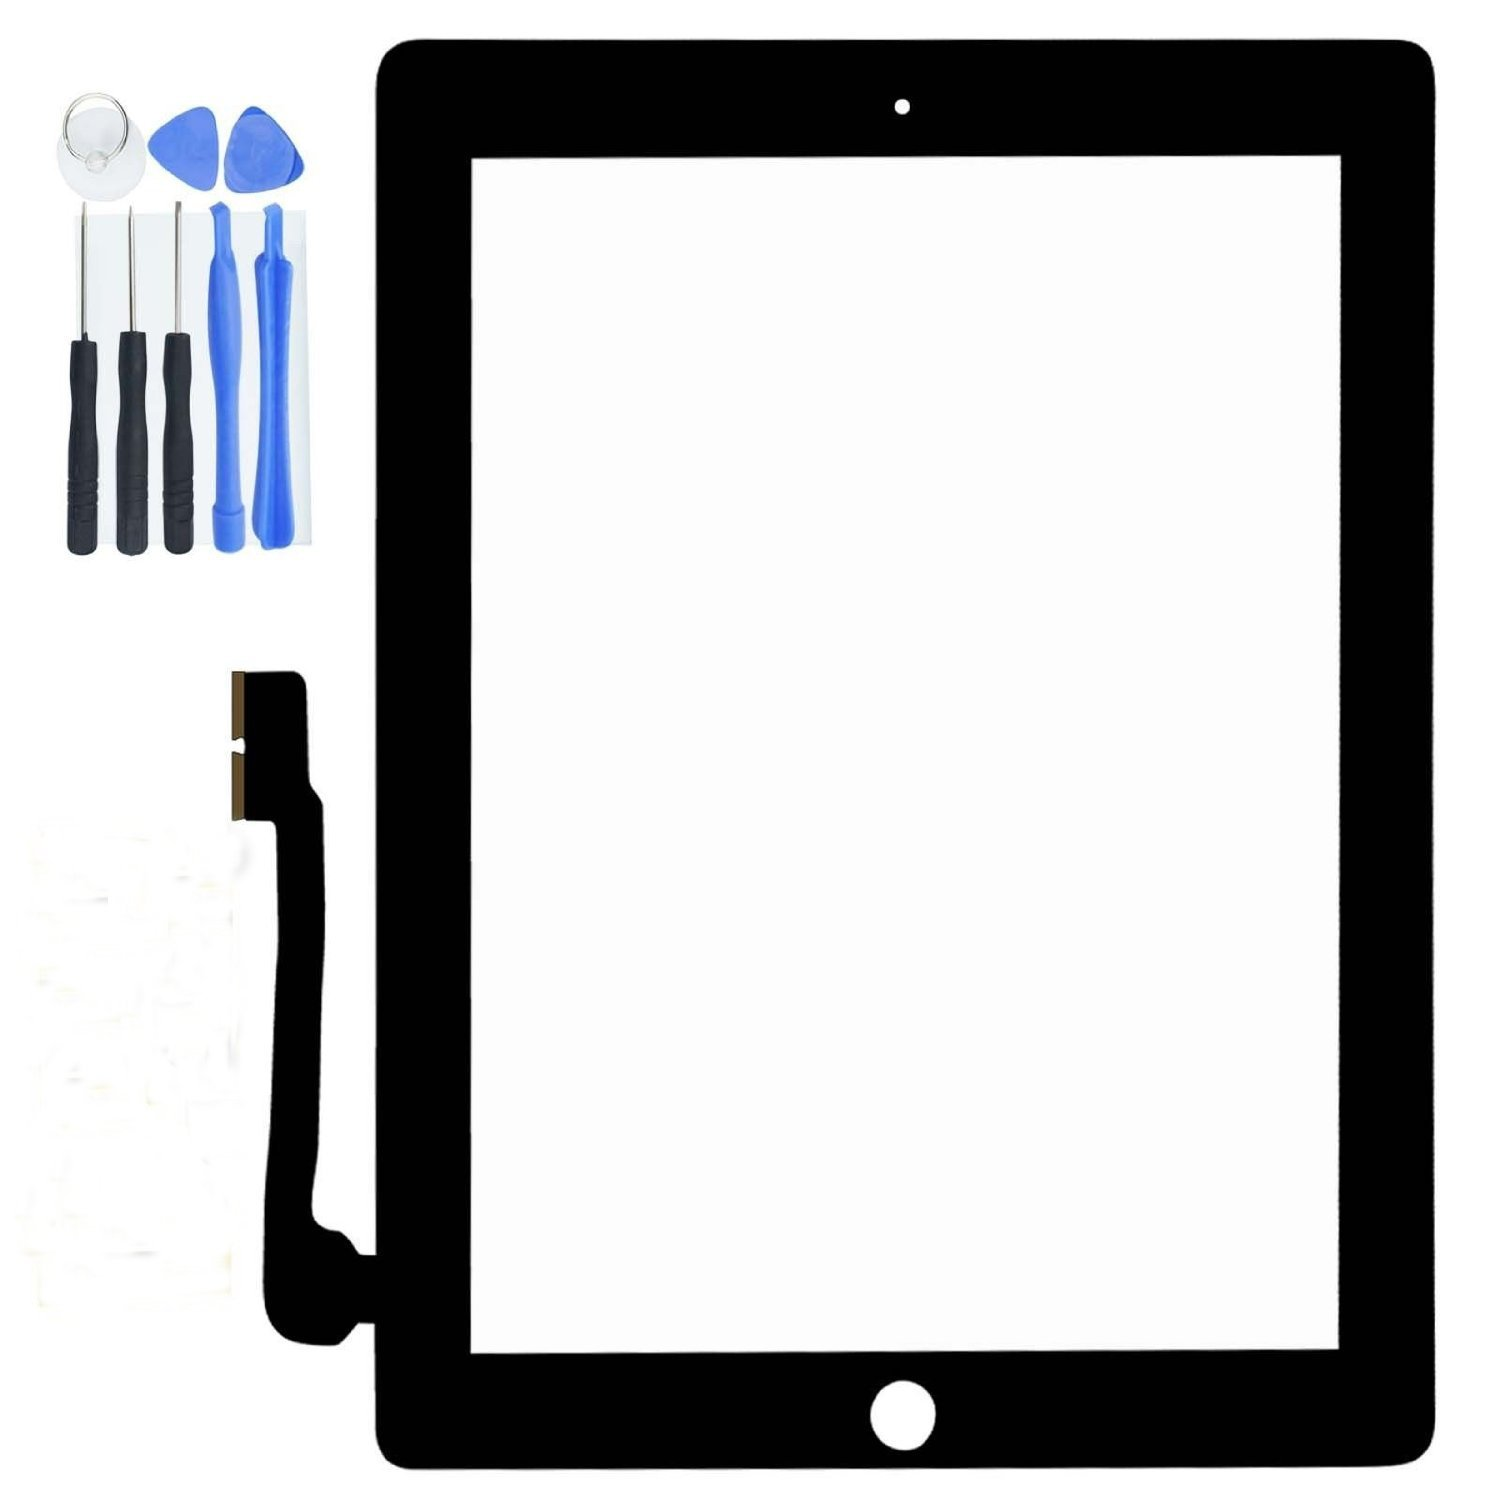 Markham123 Touch screen iPad mini Front Touch Panel Touch Screen Digitizer Includes:1 x Touch Digitizer + Adhesive Tape + 8 in 1 Tool Set (Black/ White) (Black)